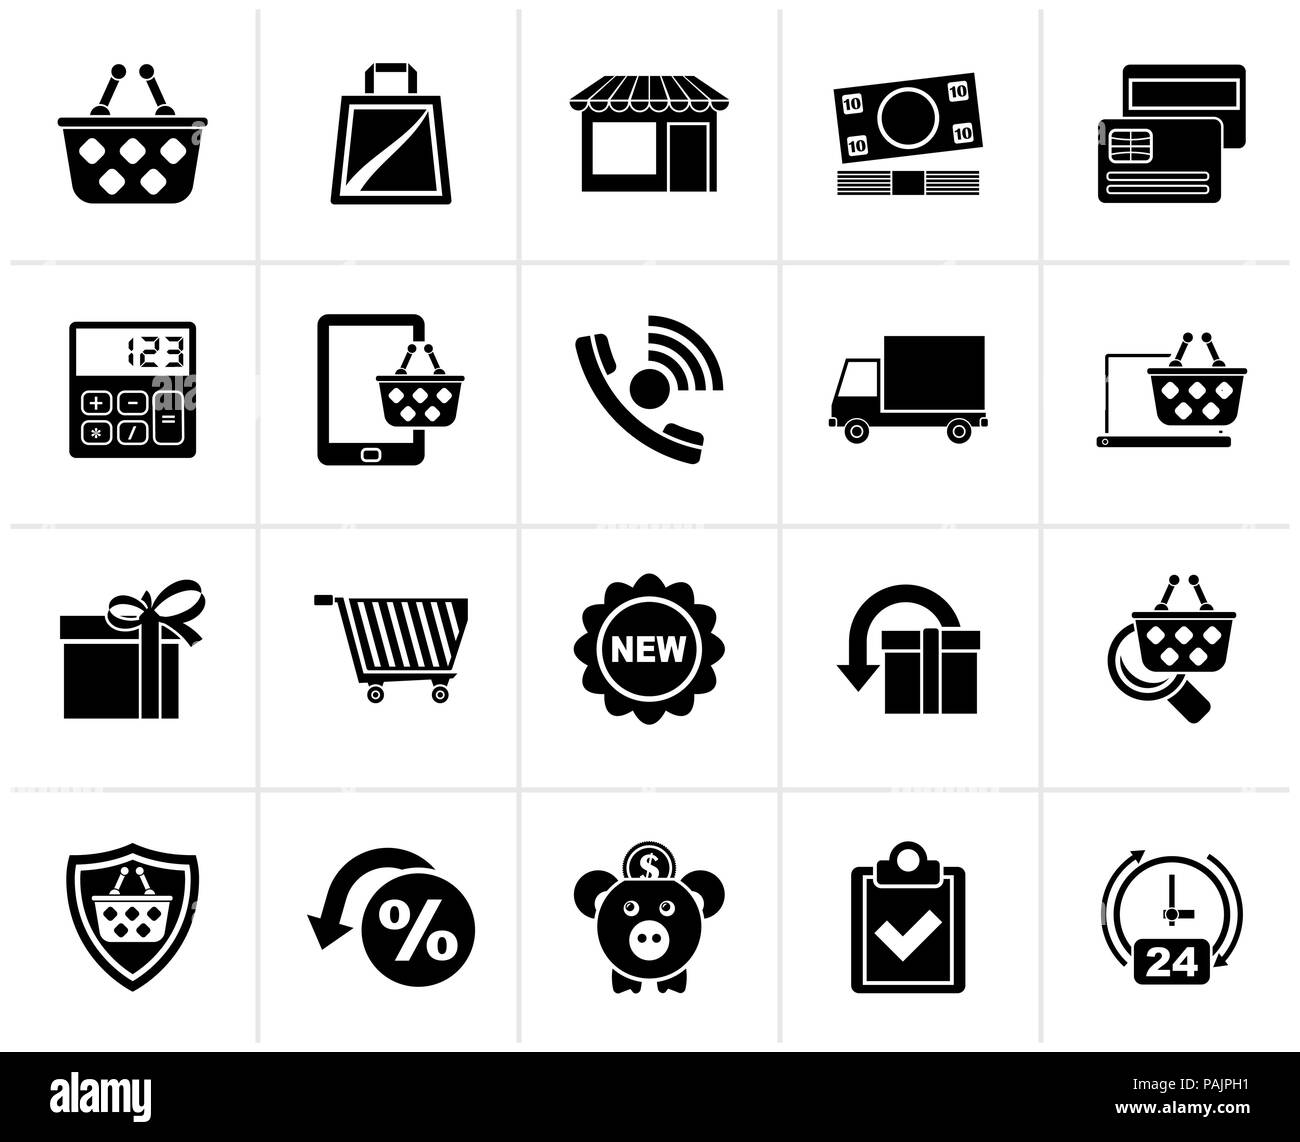 E Money Vector Vectors Black And White Stock Photos Images Alamy